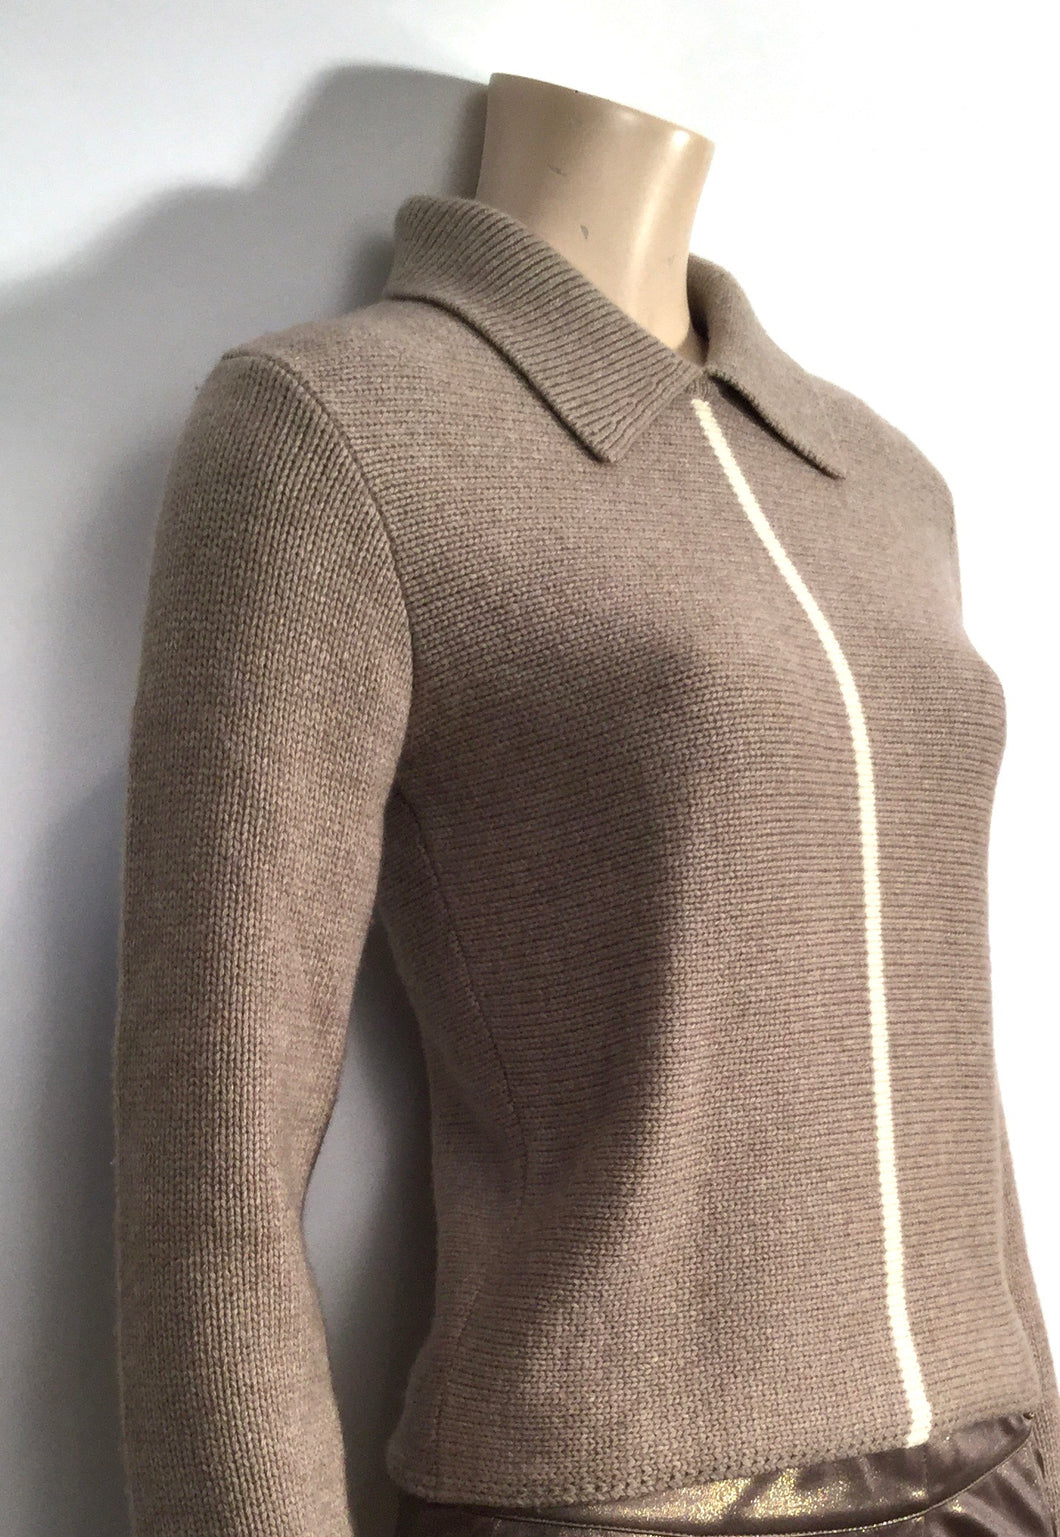 Vintage Chanel 99A pullover collar wool cashmere sweater taupe brown FR 34 US 2/4